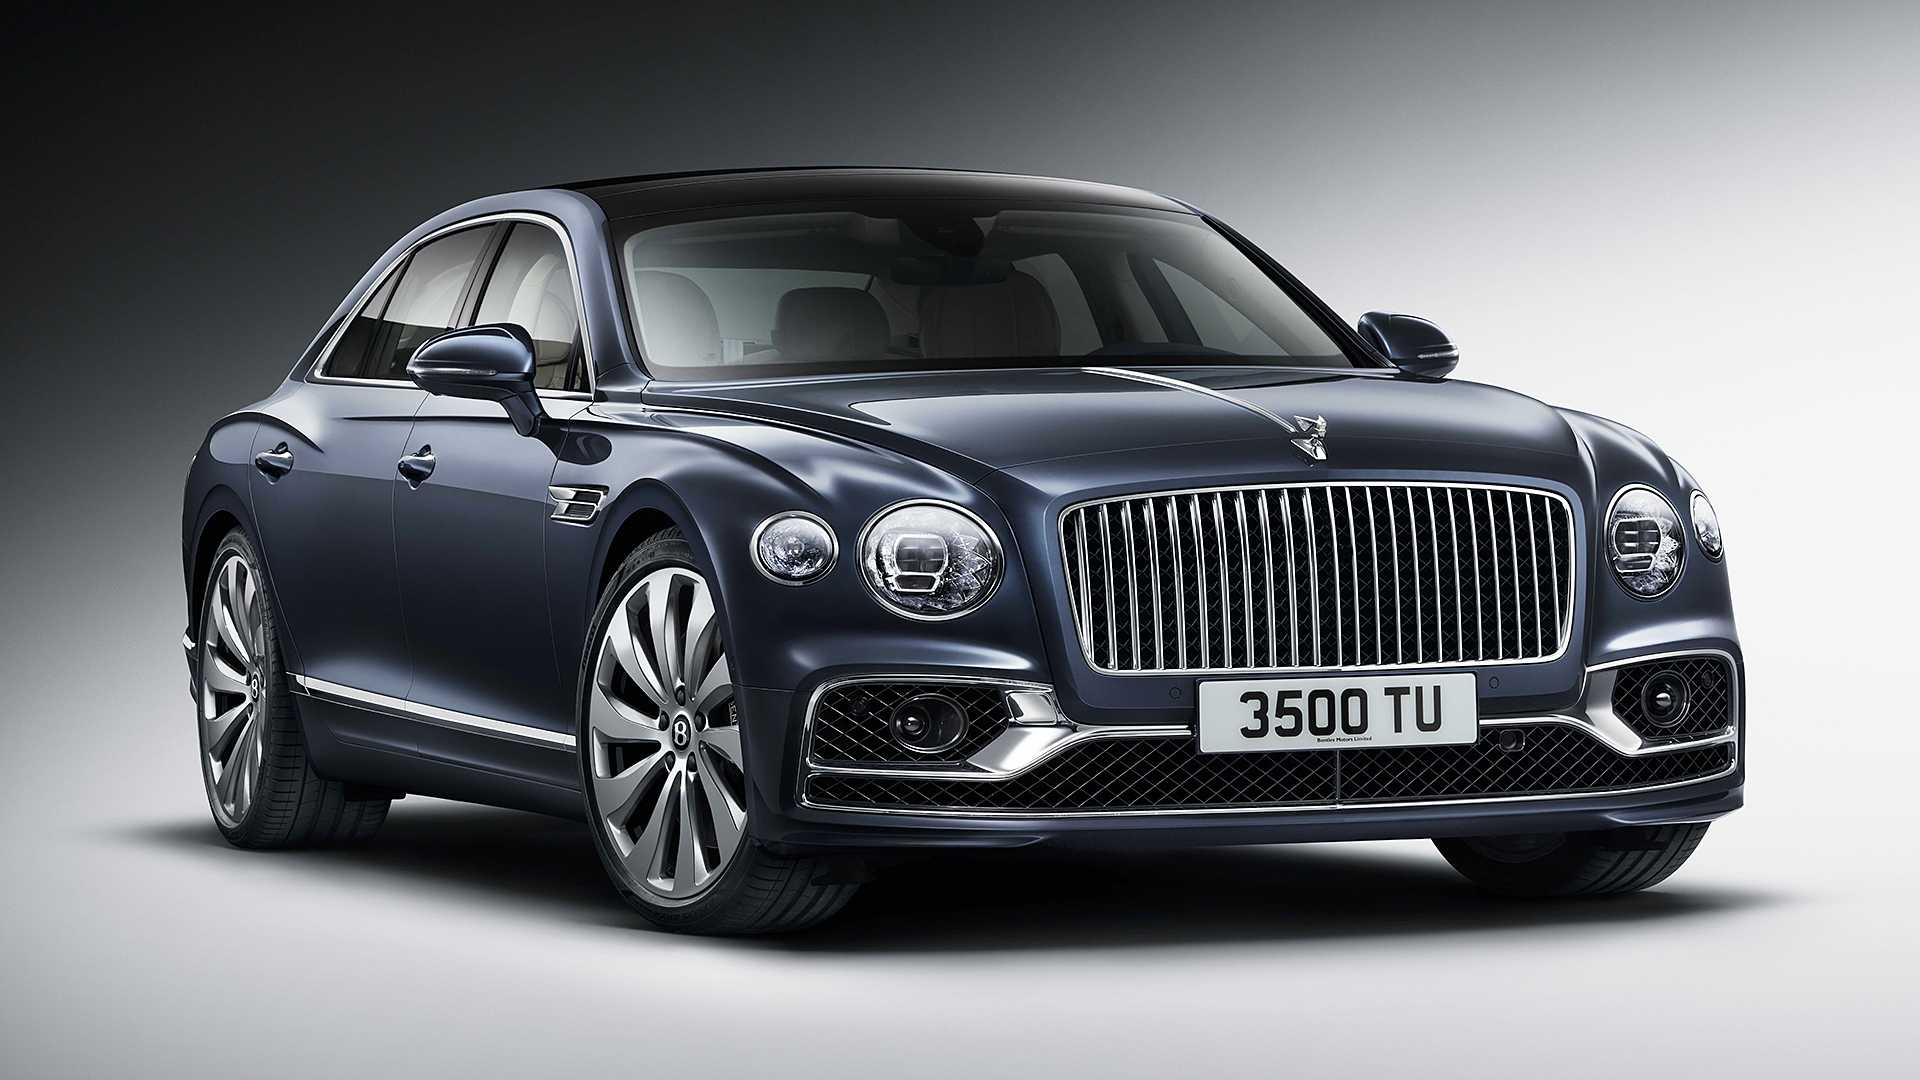 Новый Bentley Flying Spur: седан с характеристиками суперкара